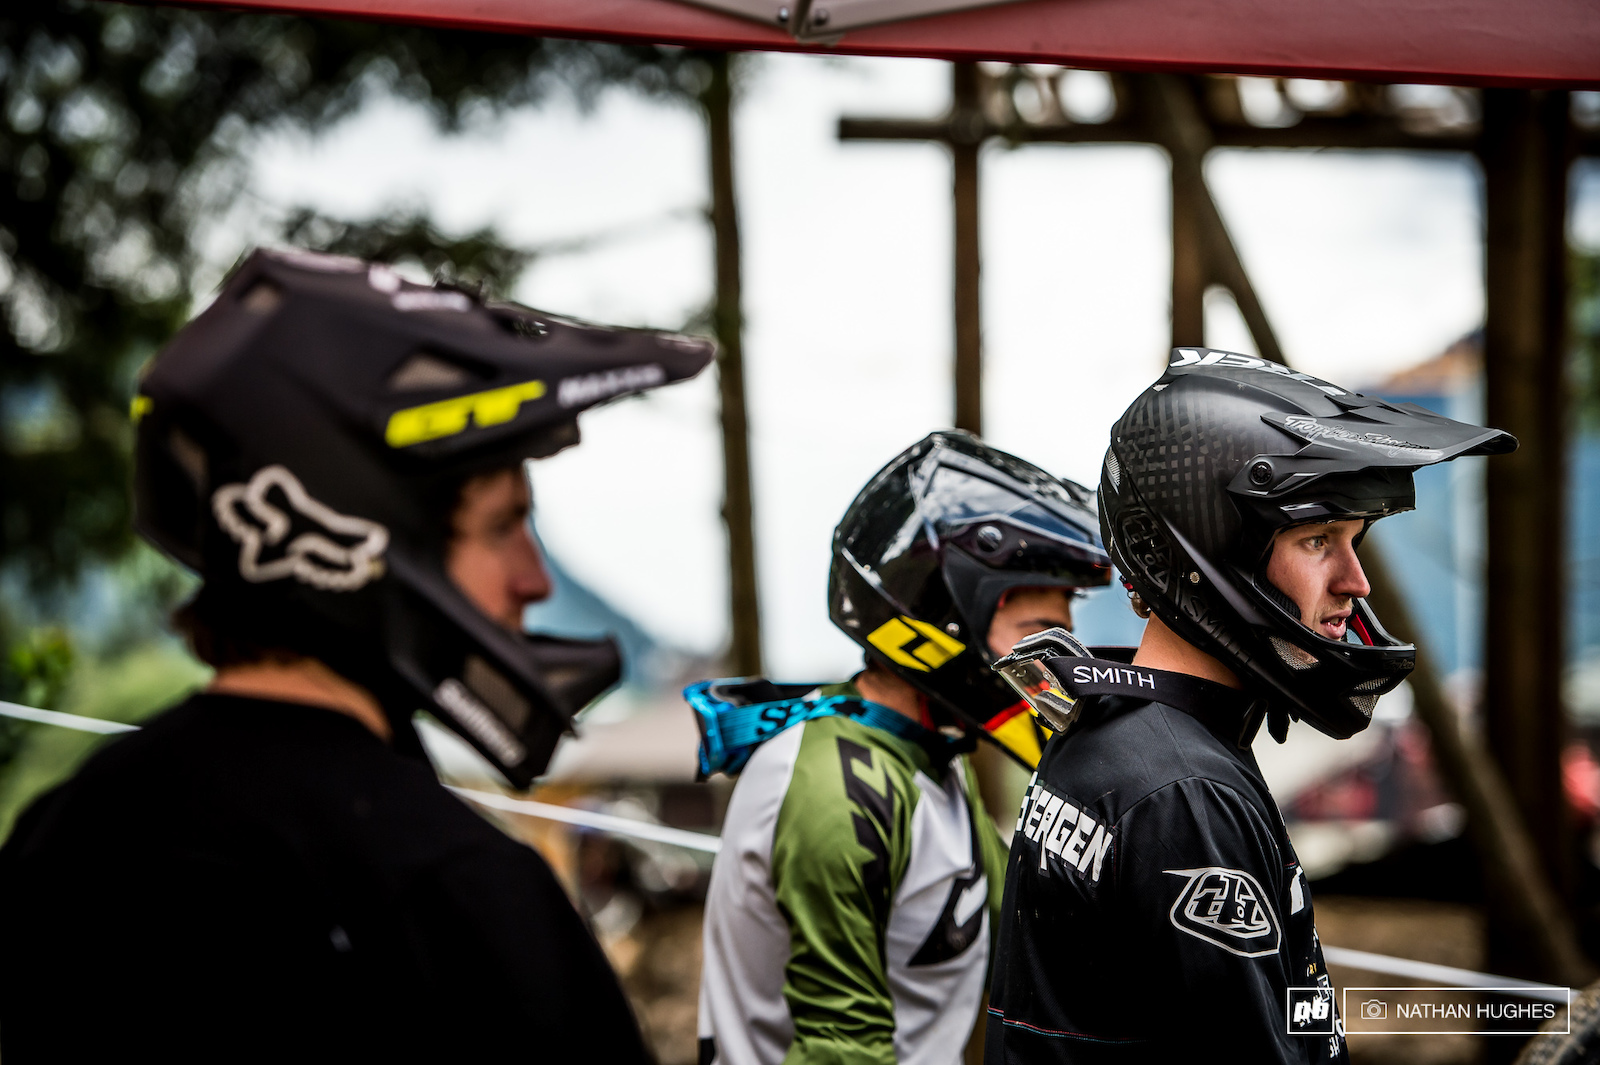 Van Steenbergen and T-Mac watch on as their fellow competitors throw down.